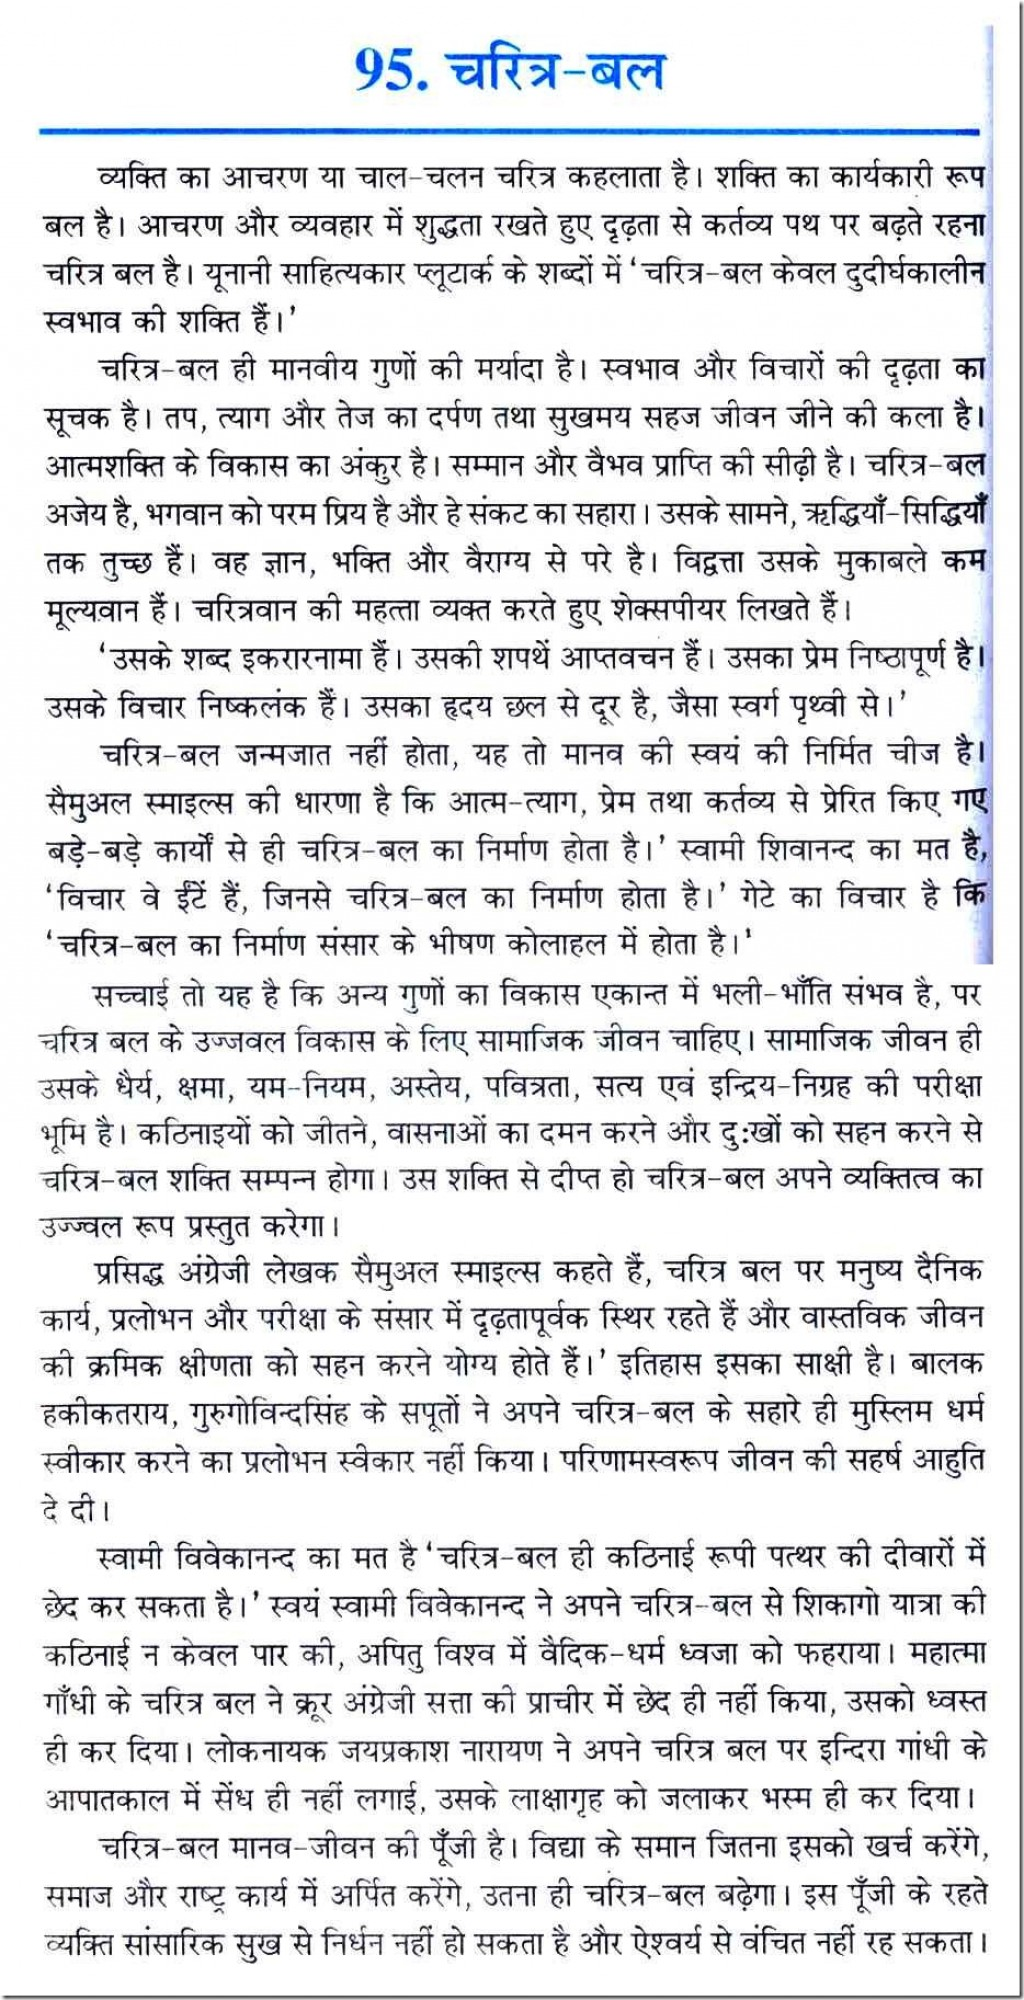 014 Essay On Electricity In Hindi Example Essays The Power Of Imposing Veto Youth Problem Language Large